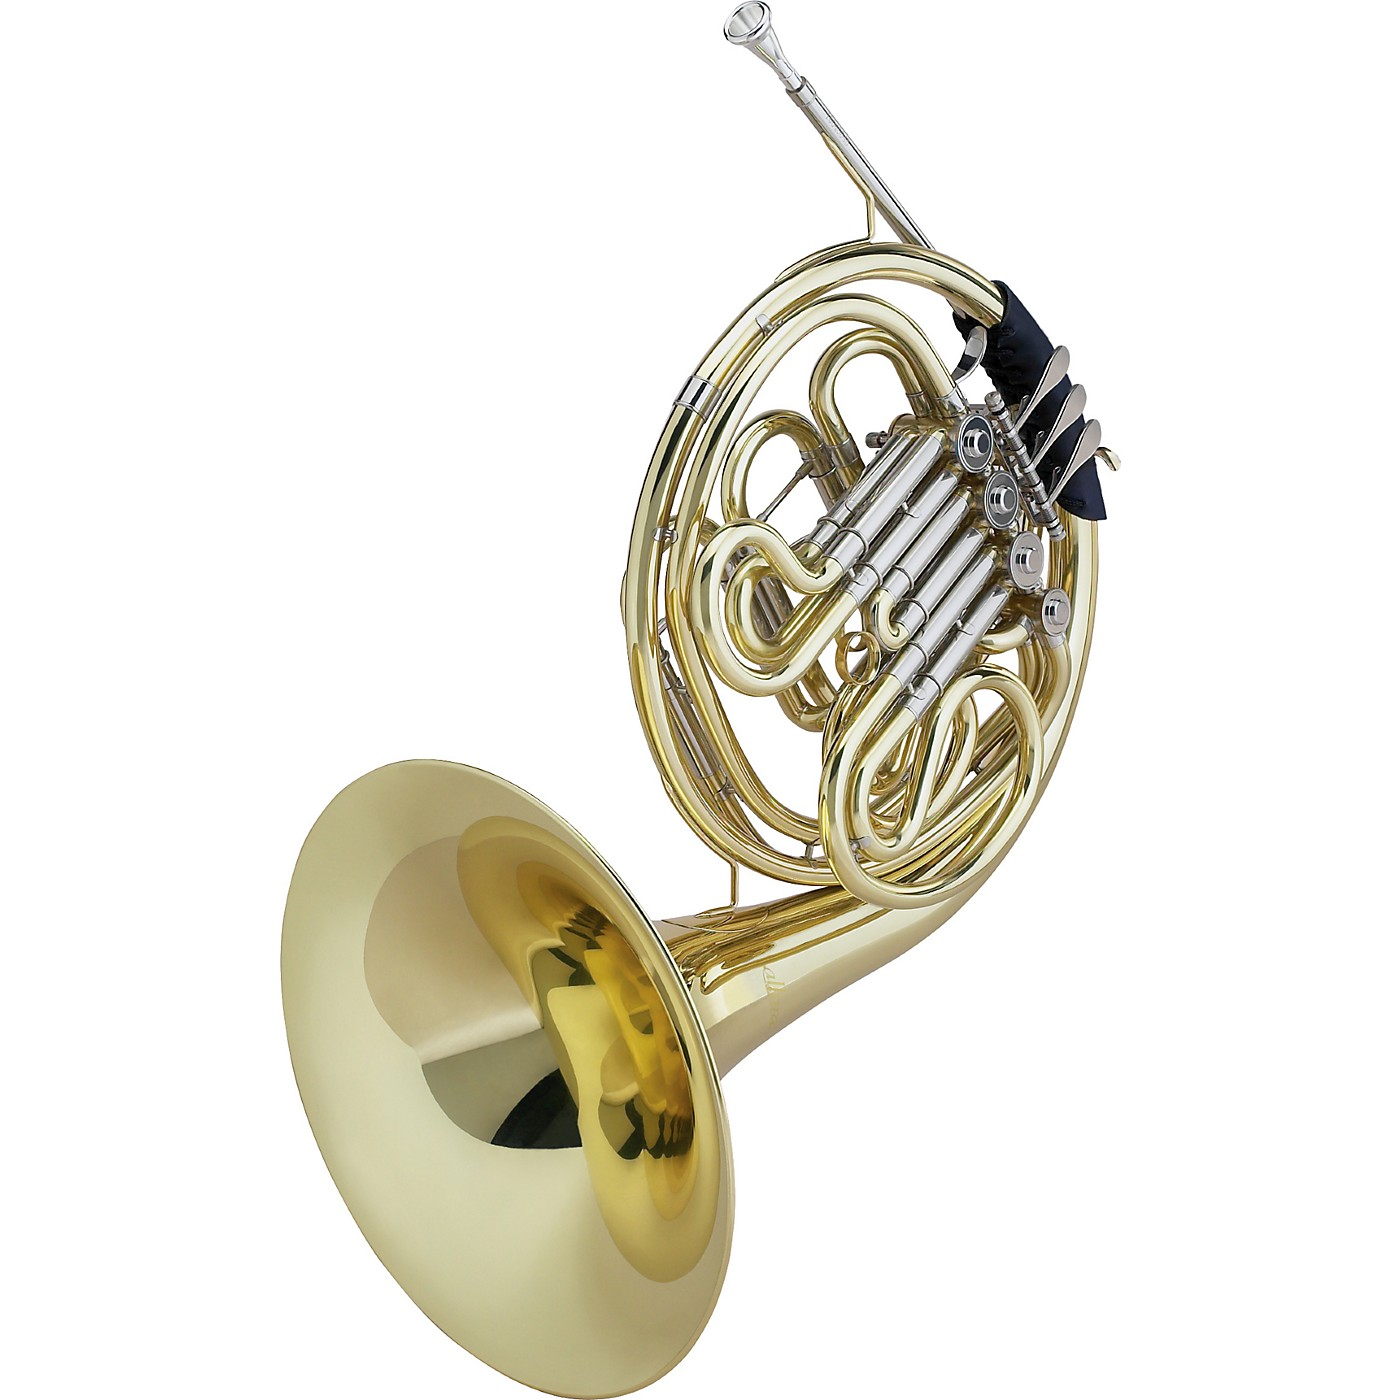 Allora AAHN-229 Geyer Series Double Horn thumbnail